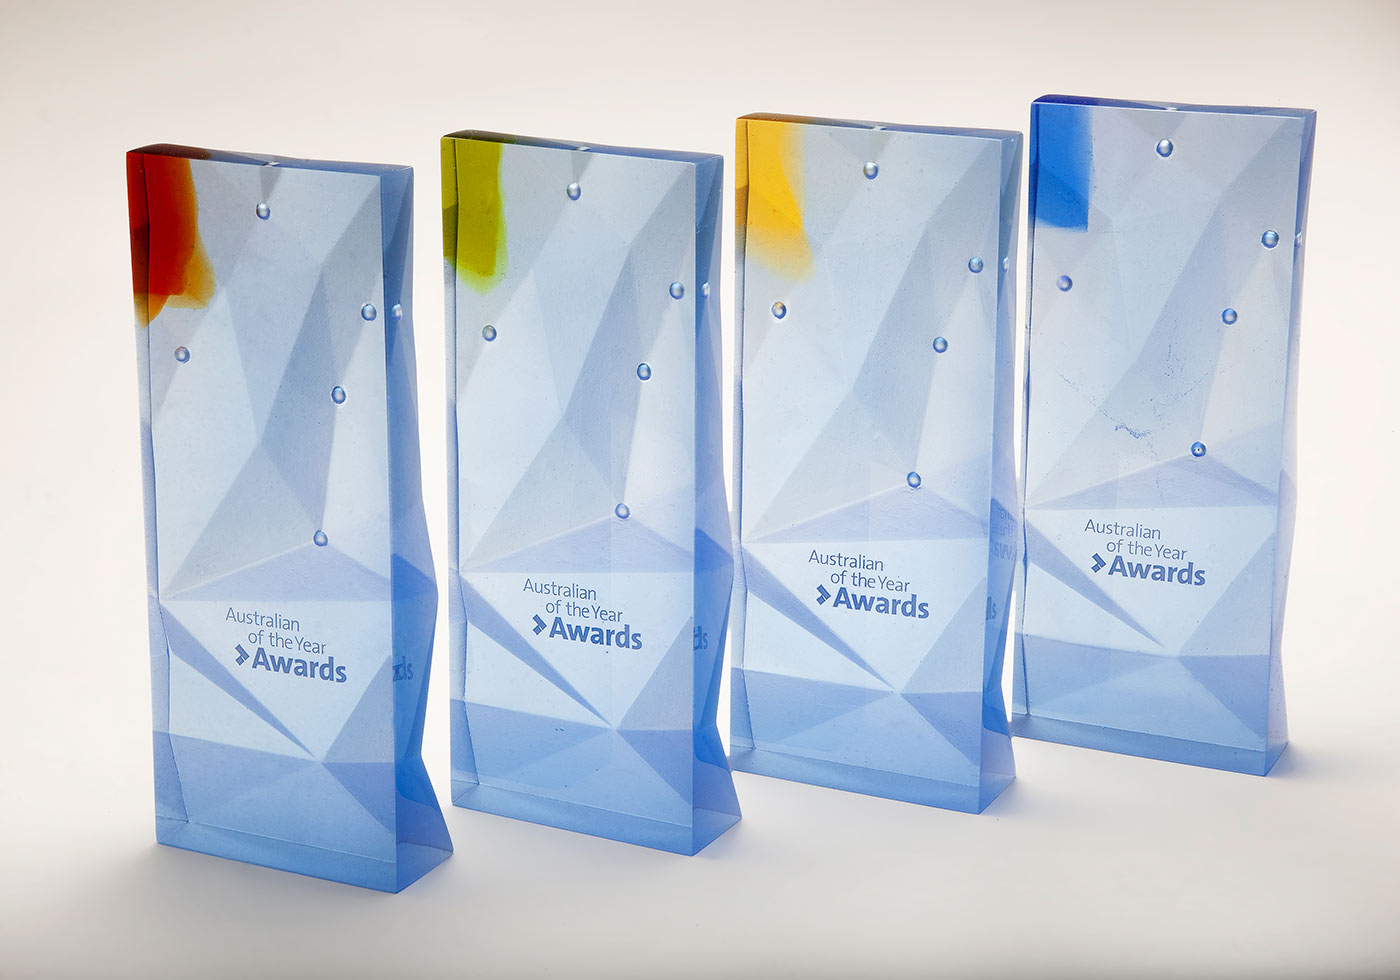 Four largely clear glass trophies with text 'Australian of the Year' and a small coloured glass tab top left. - click to view larger image